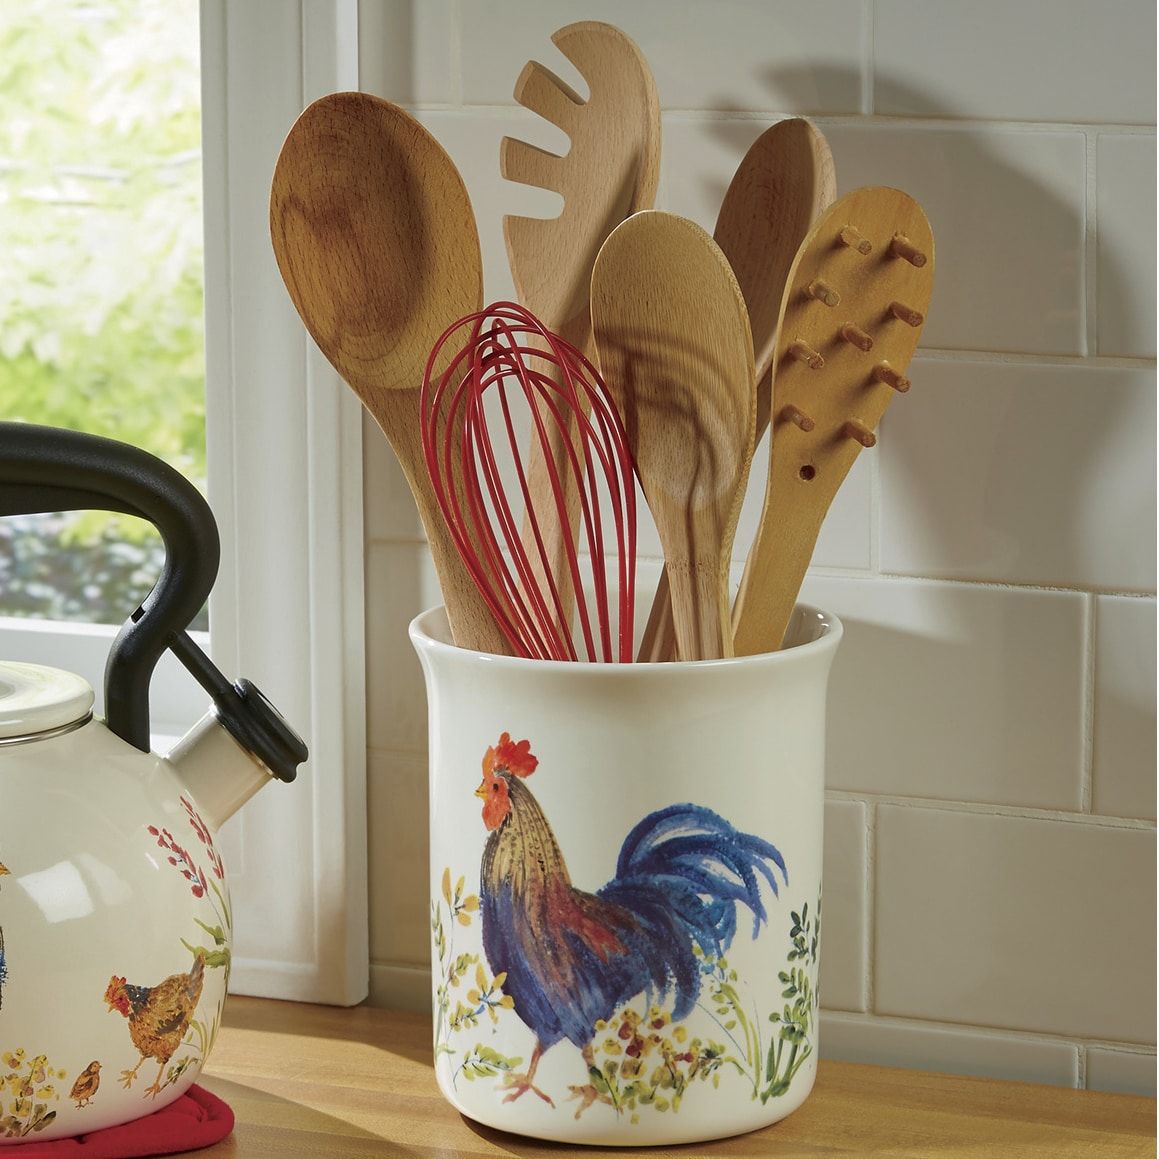 kitchen tool crock sink hole cover garden rooster by paula deen ginny s